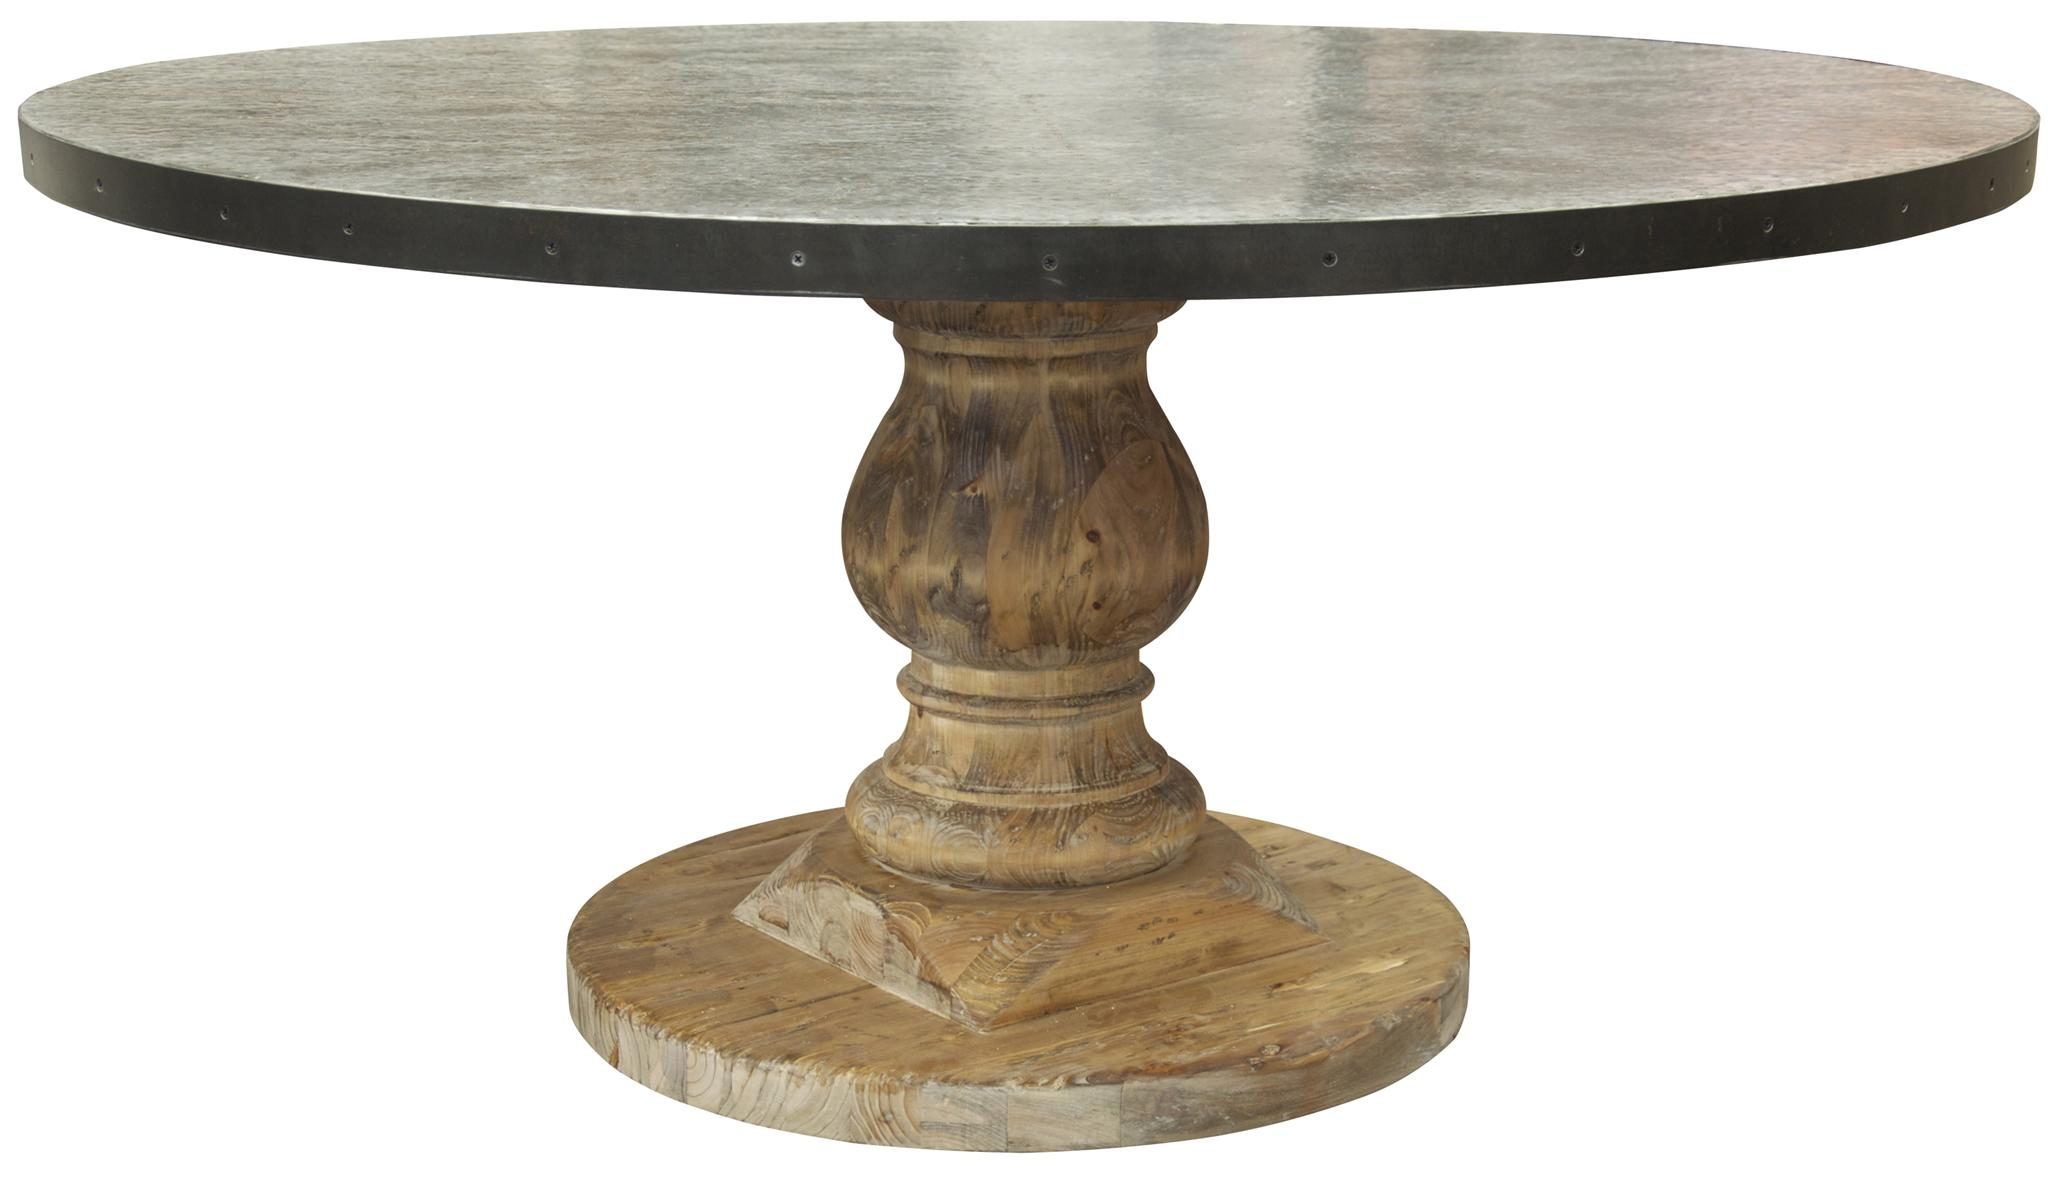 Tr zinc top table with old wood base blue hand home for Round stone top dining table